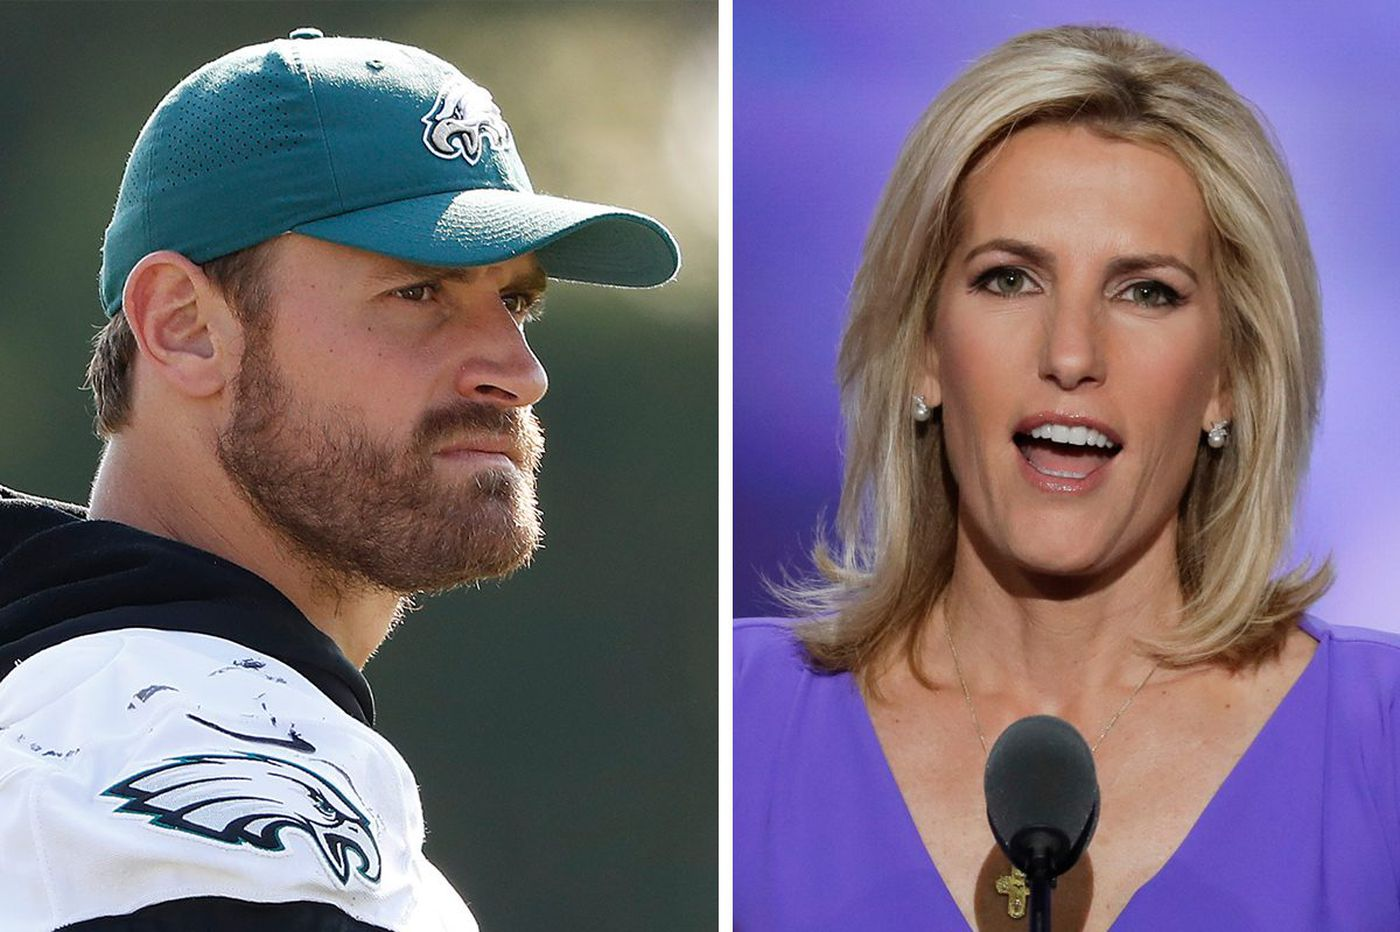 Fox News host wants LeBron to 'shut up and dribble.' That upset Eagles defender Chris Long.